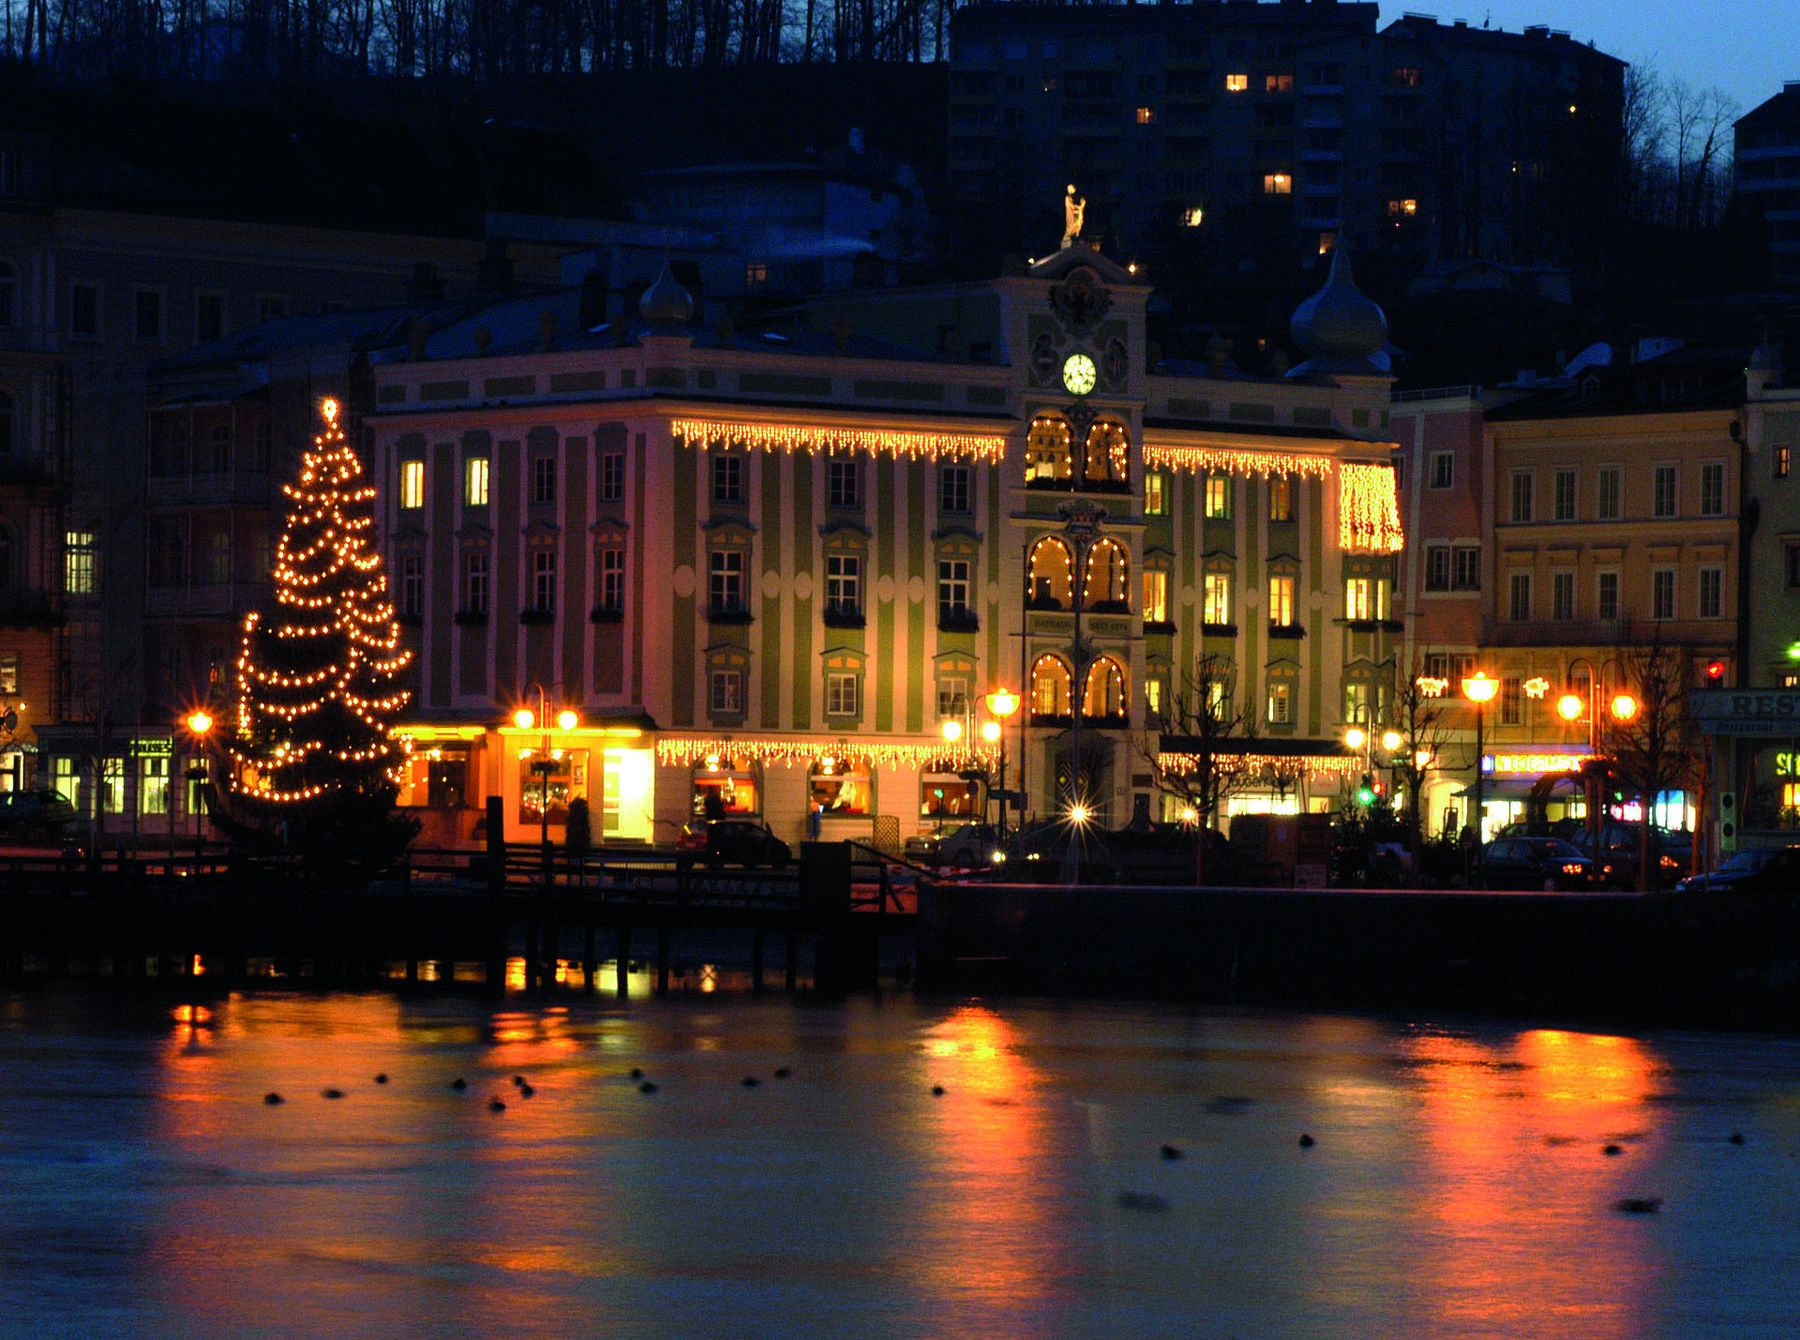 Advent am Traunsee